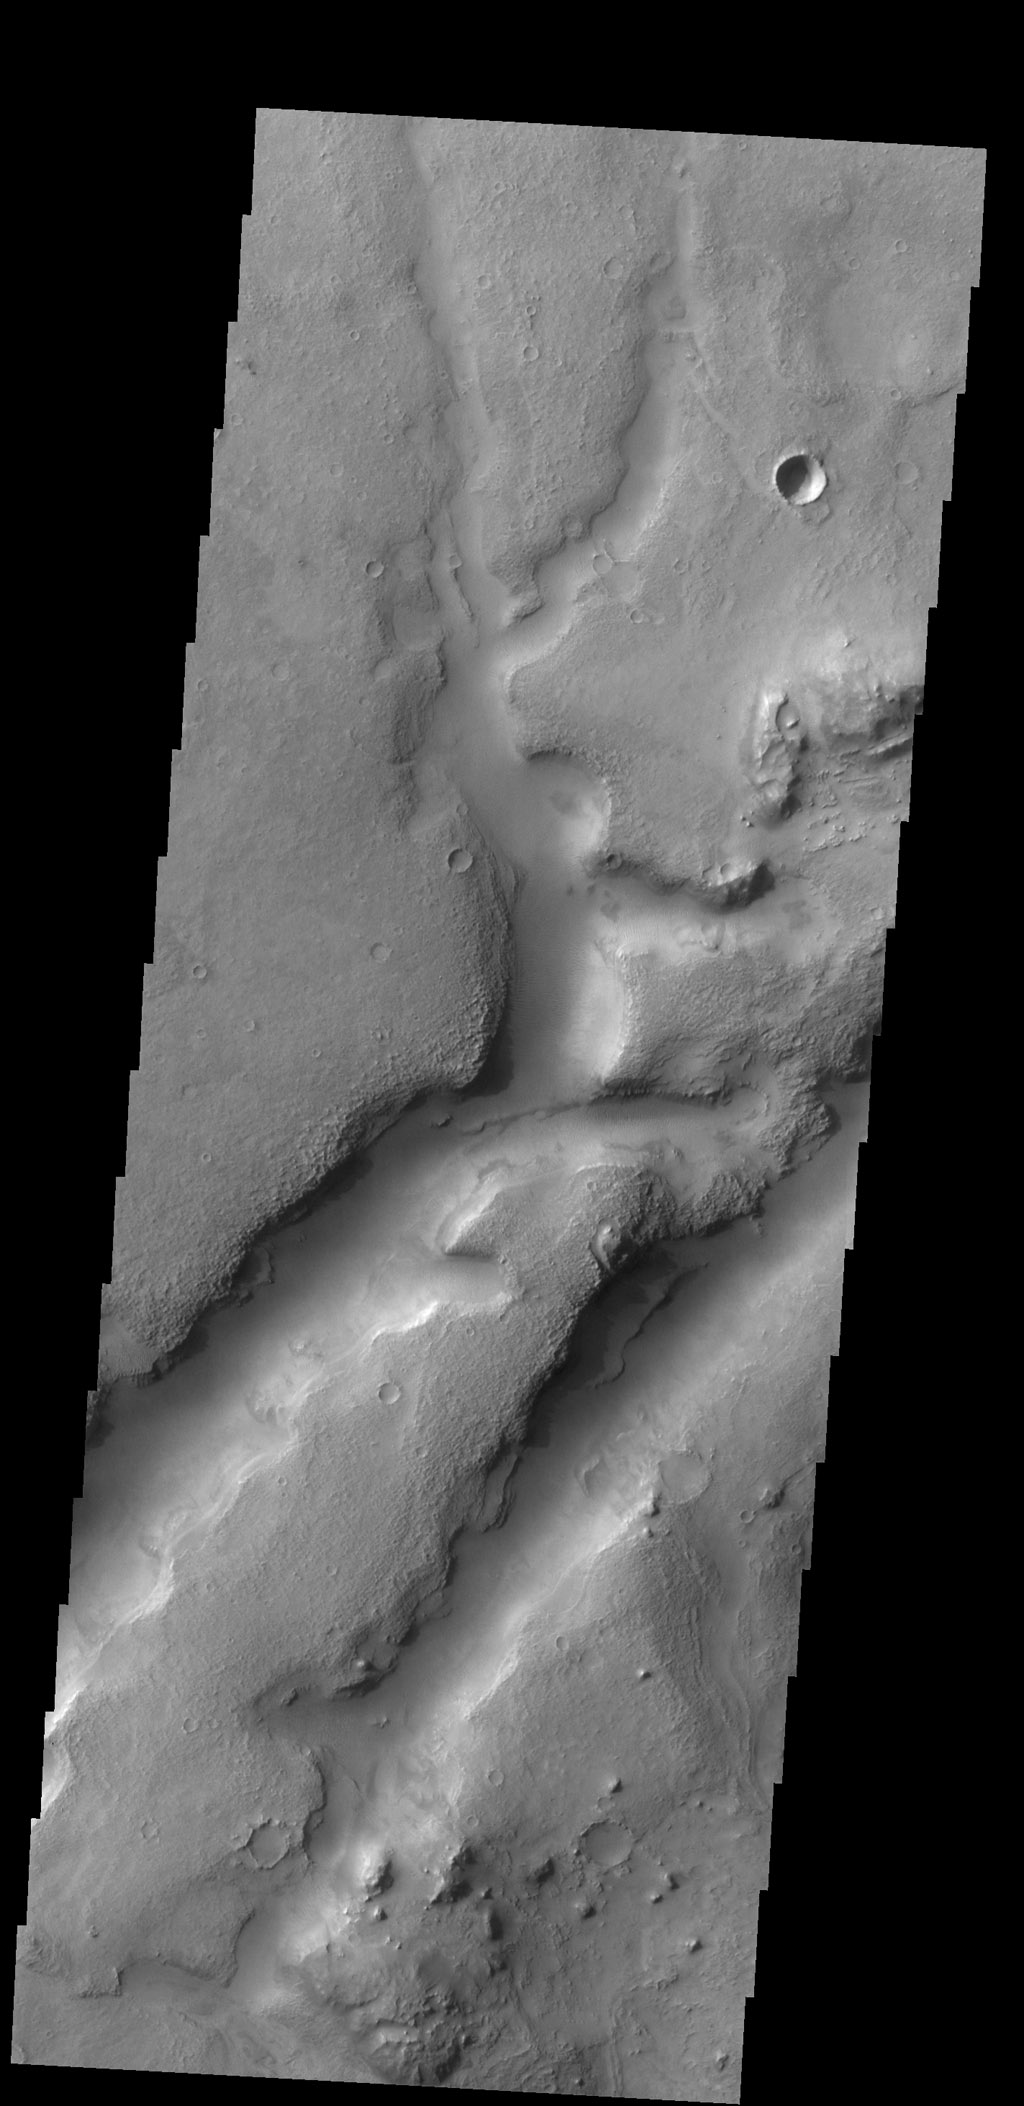 This complex channel is located in the Nili Fossae region as seen by NASA's 2001 Mars Odyssey spacecraft.